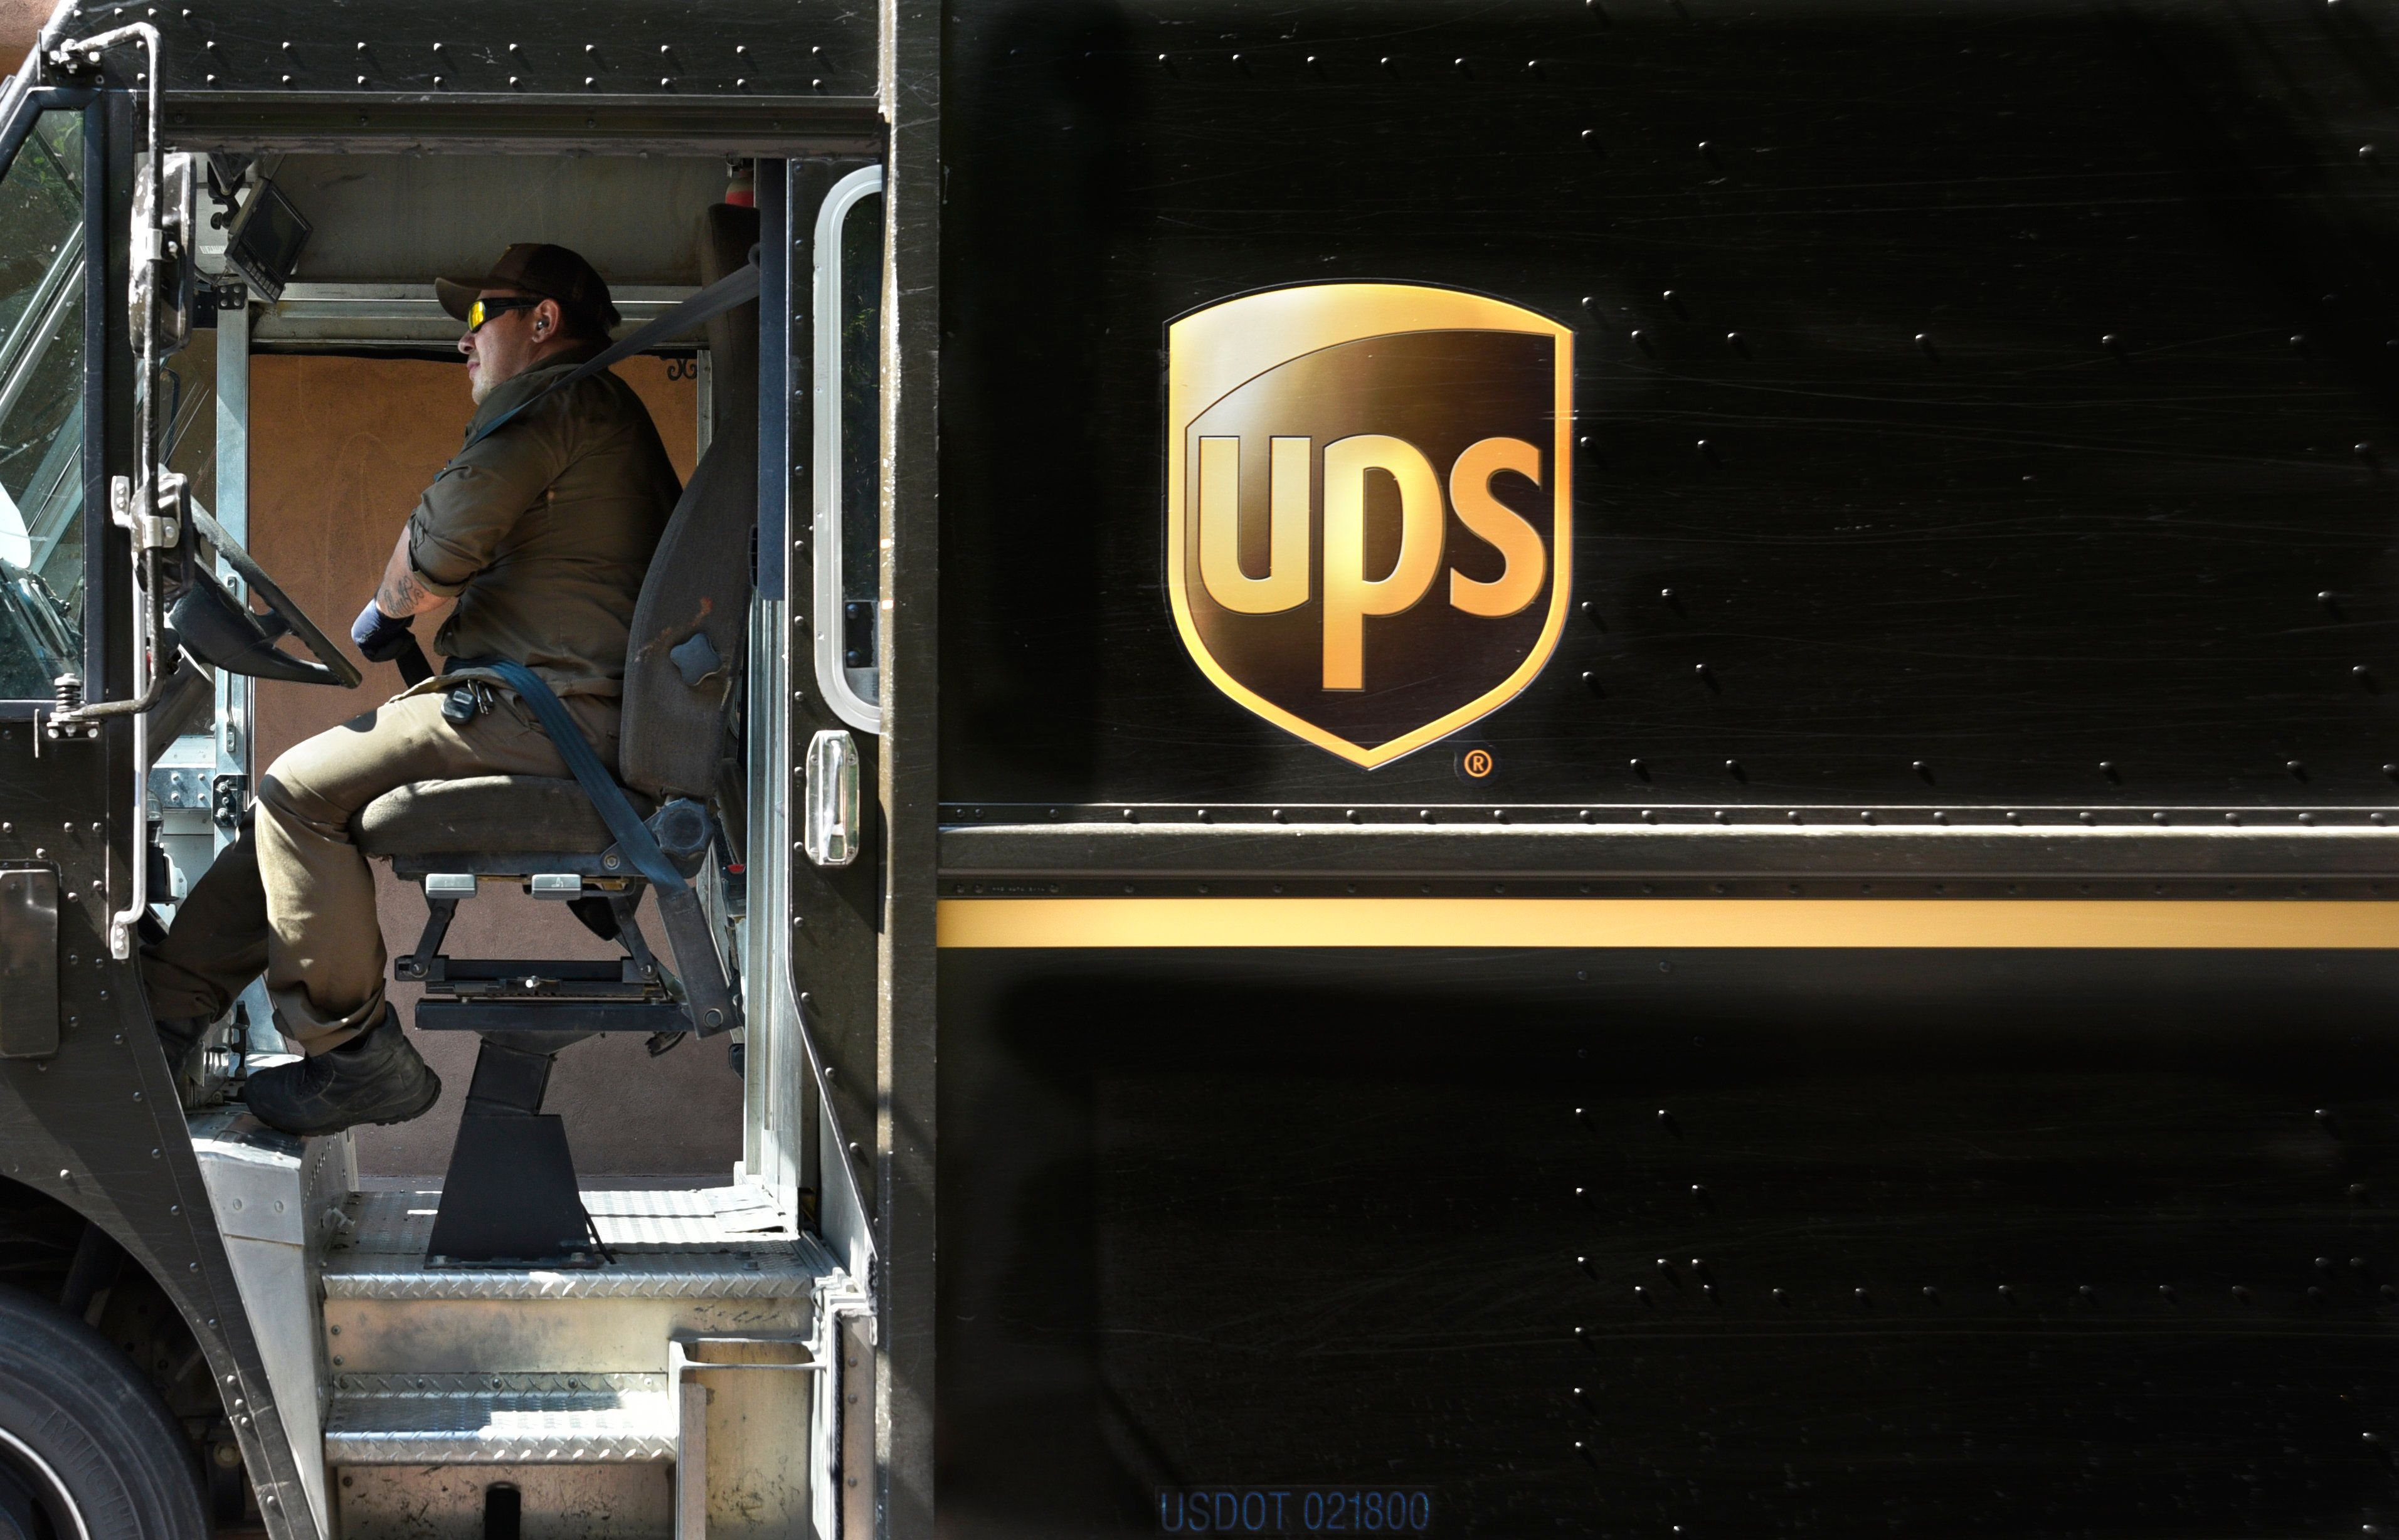 Teamsters Union Faces Revolt From Members Over UPS